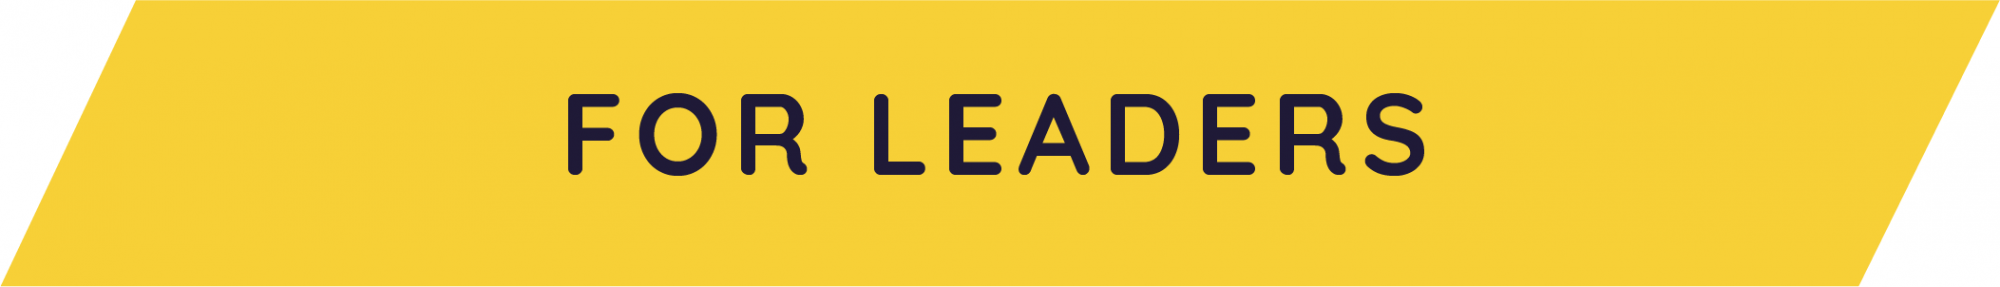 for_leaders@4x